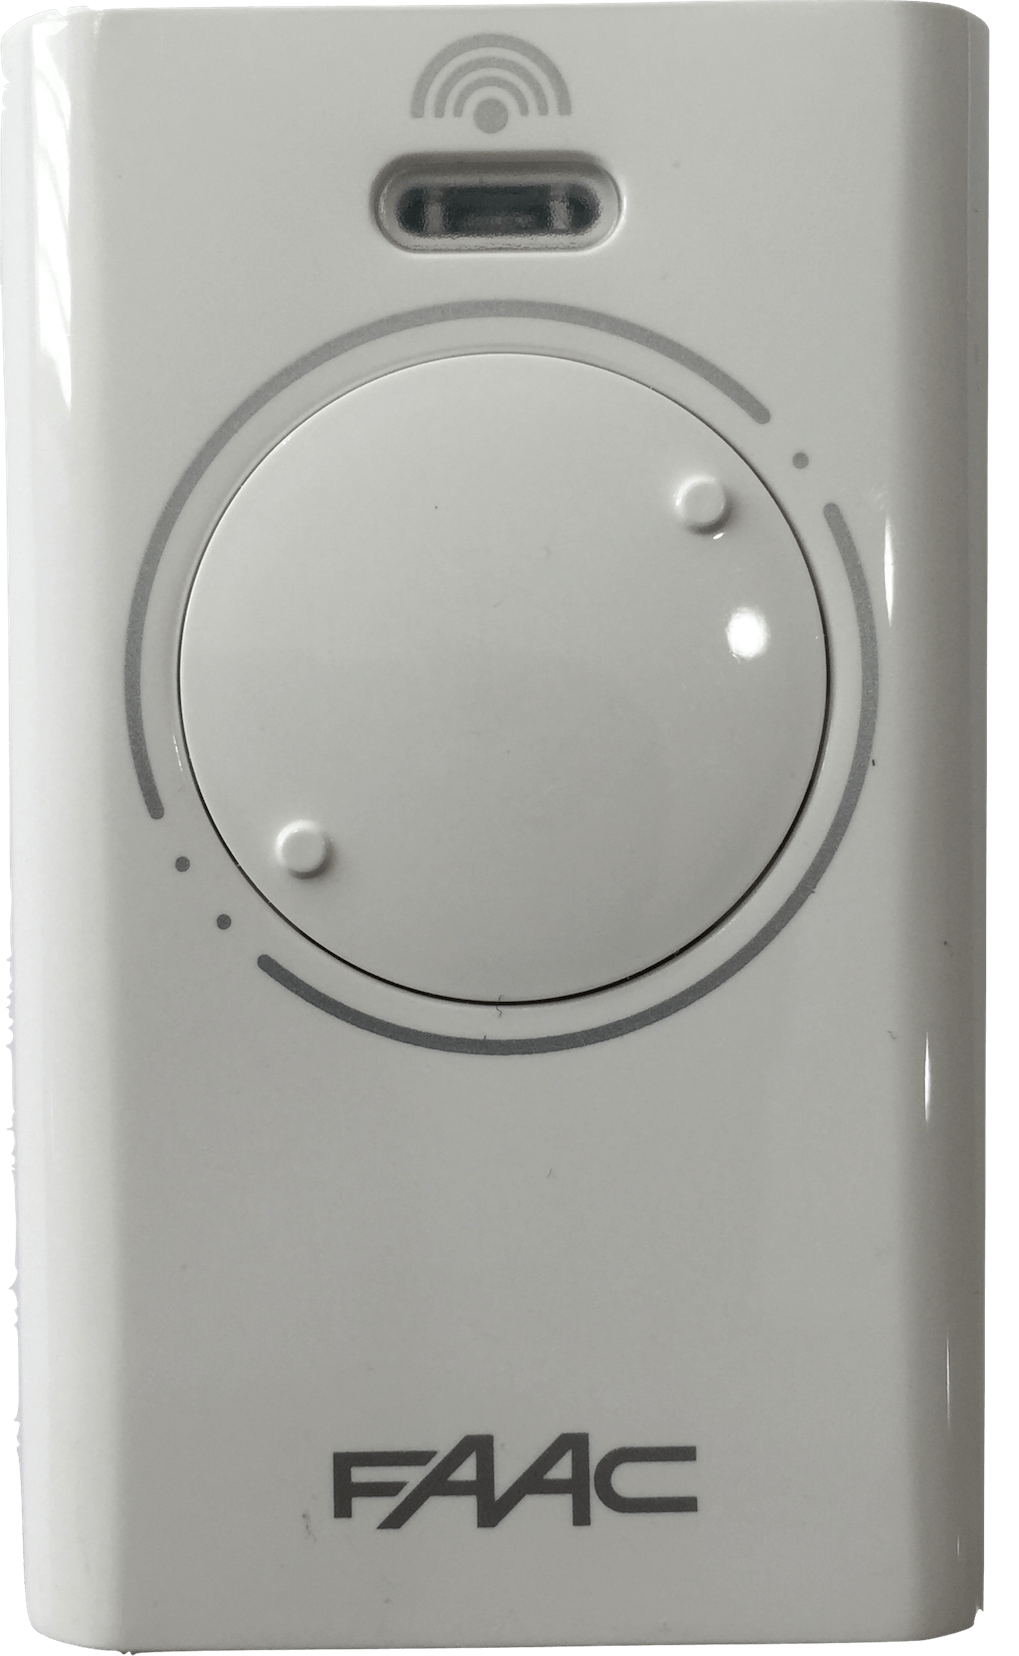 Faac XT2 433SLH LR - White | Gate and garage door remote